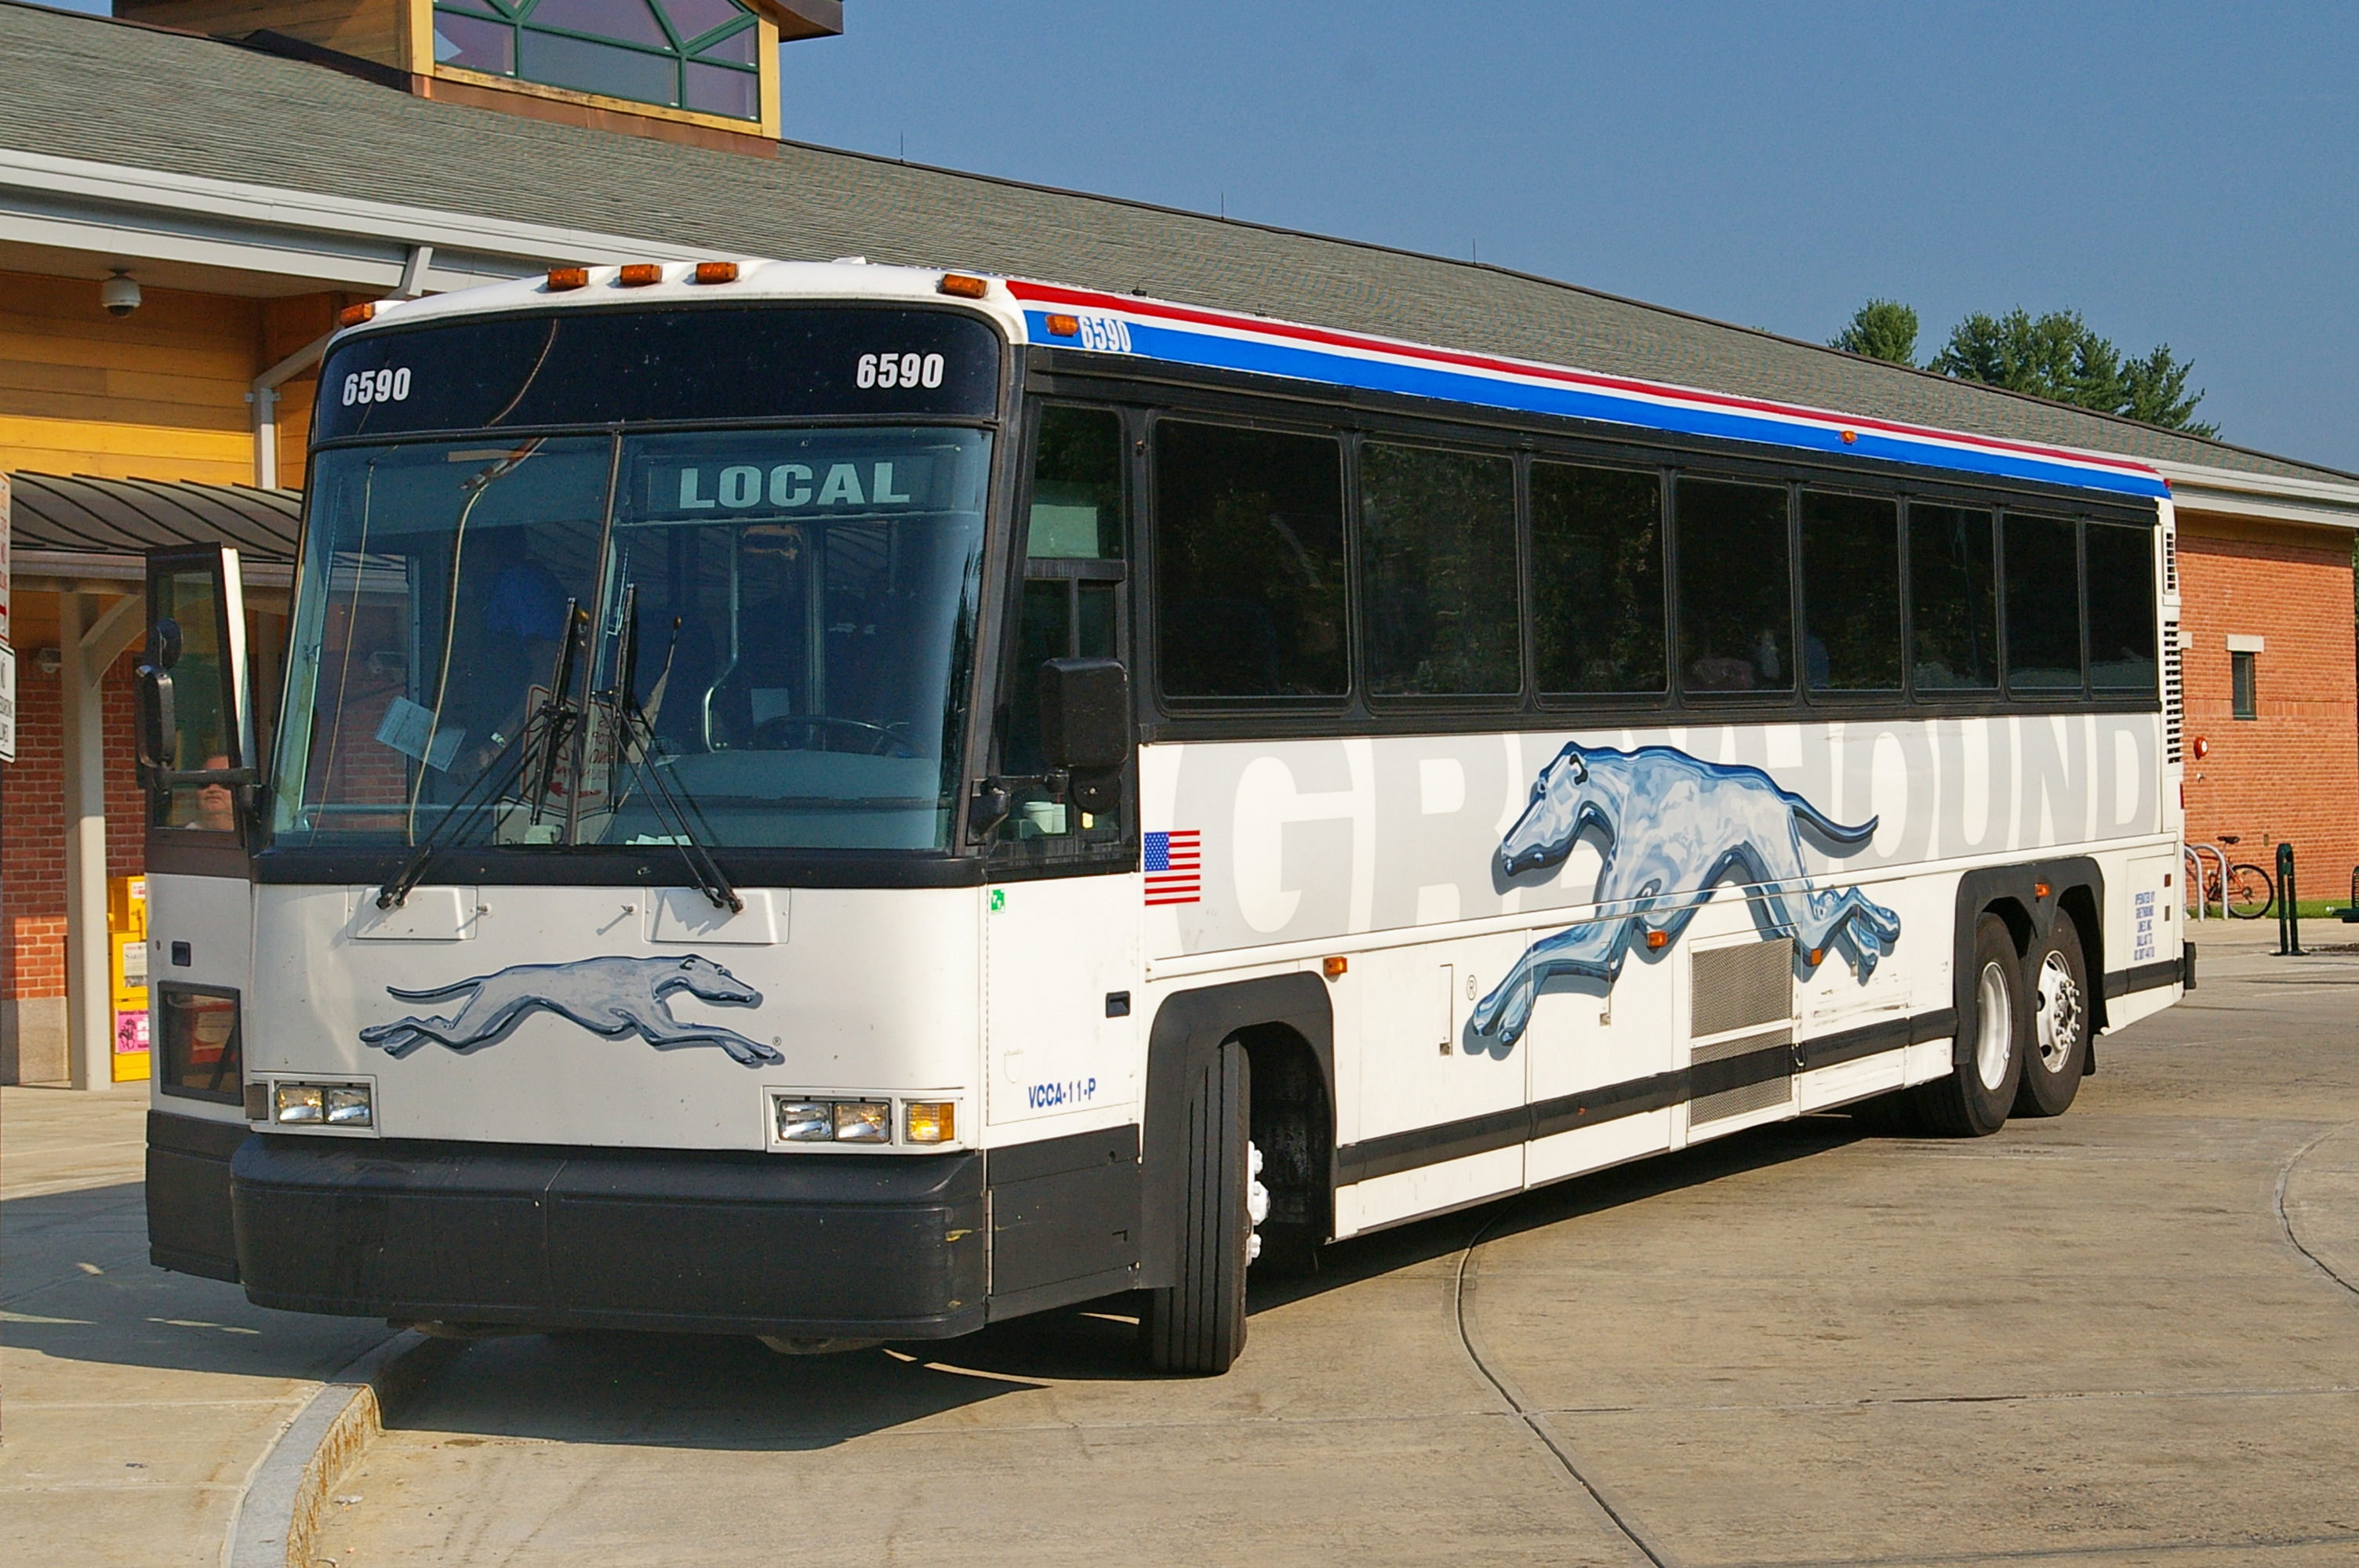 File:Greyhound-Bus.jpg - Wikimedia Commons